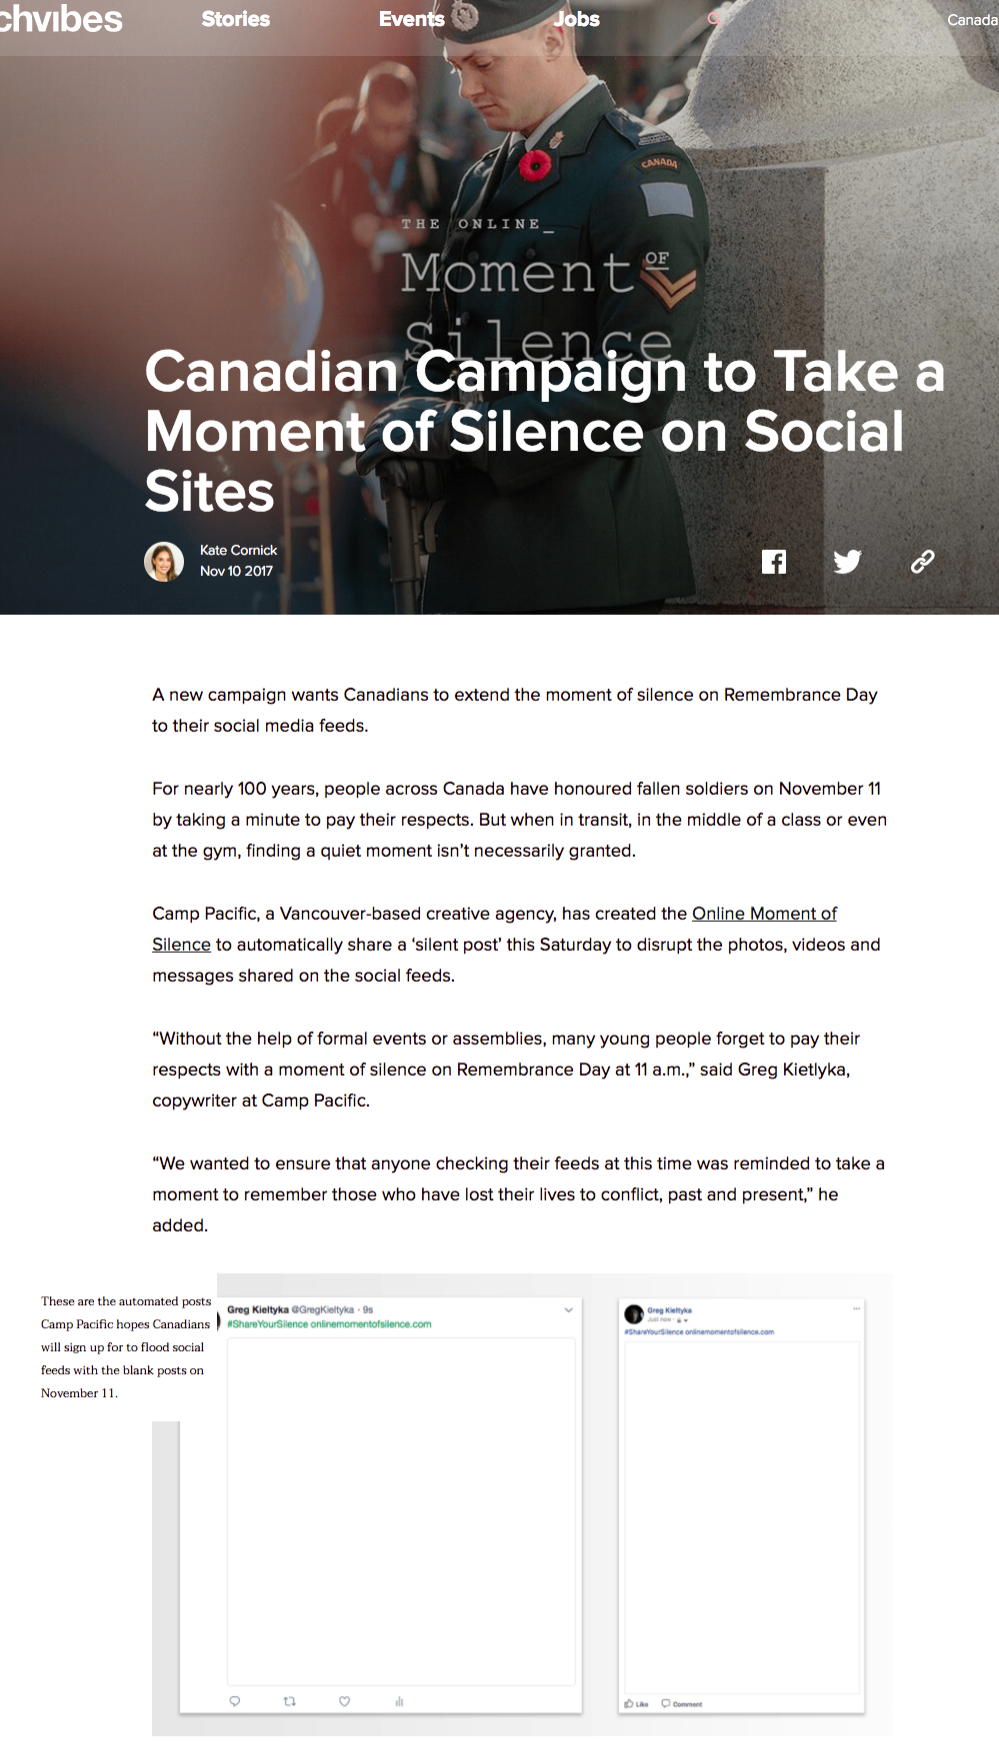 techvibes-2017-11-10-canadian-campaign-to-take-a-moment-of-silence-on-social-sites-1510614542016.png